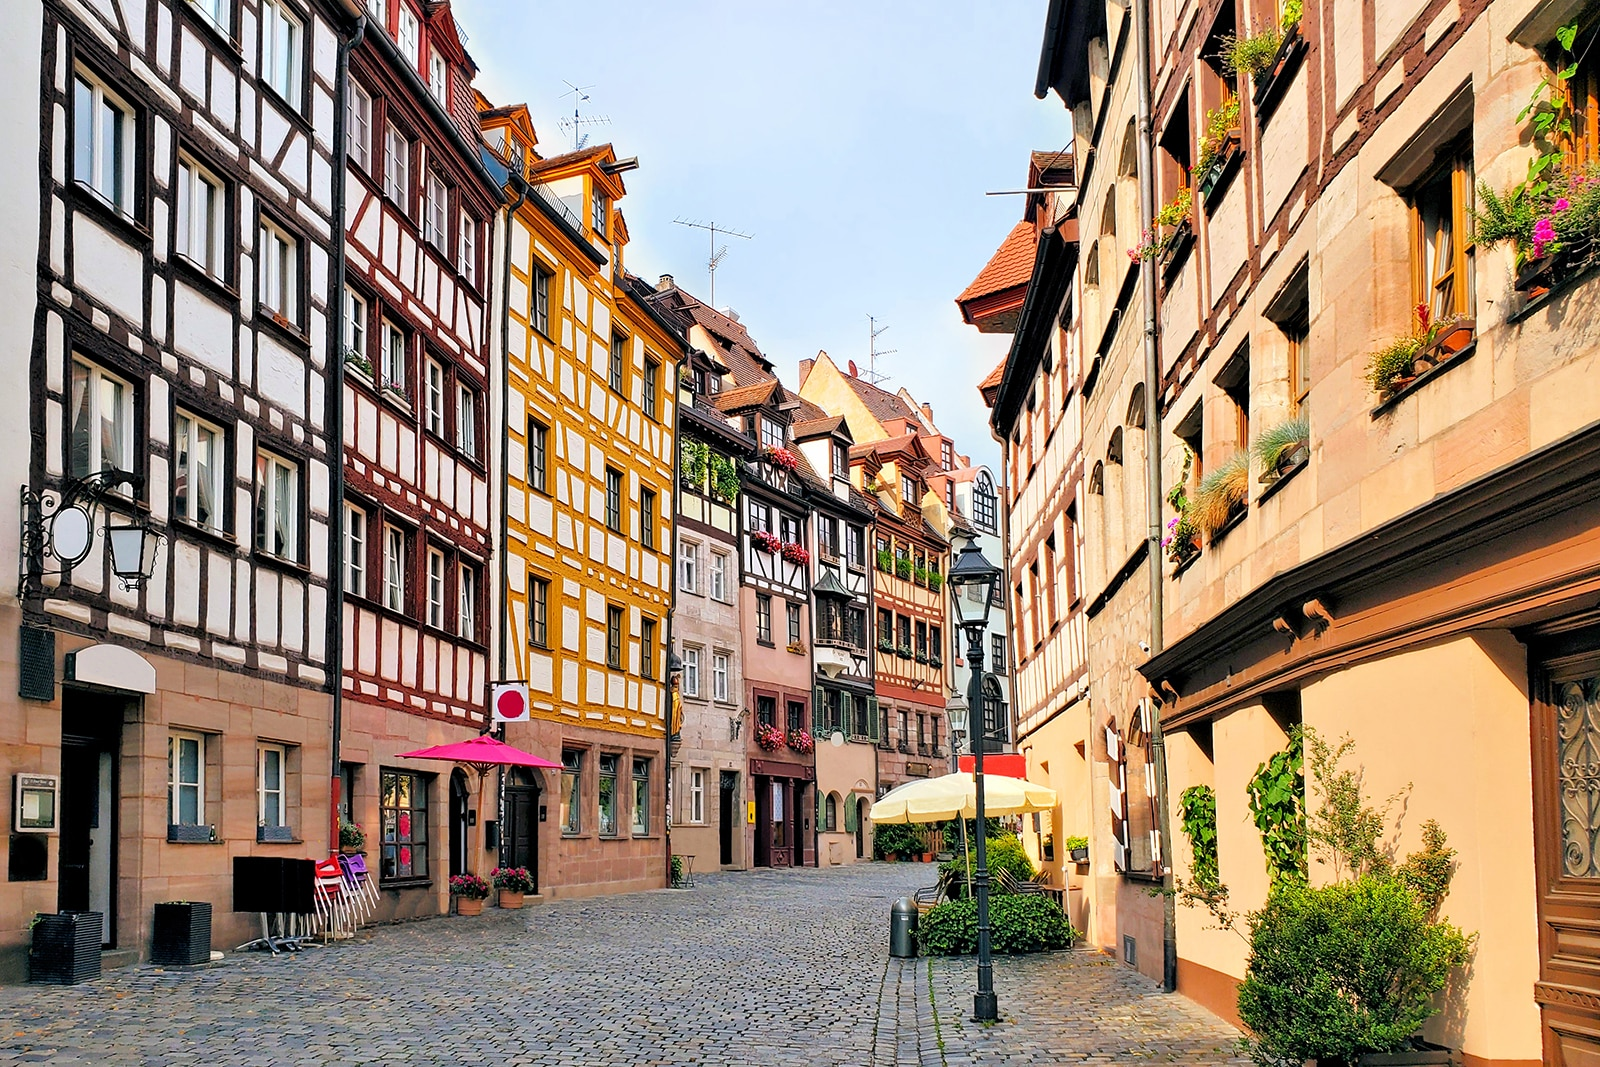 10 Best Things to Do in Nuremberg - What is Nuremberg Most Famous For? – Go  Guides